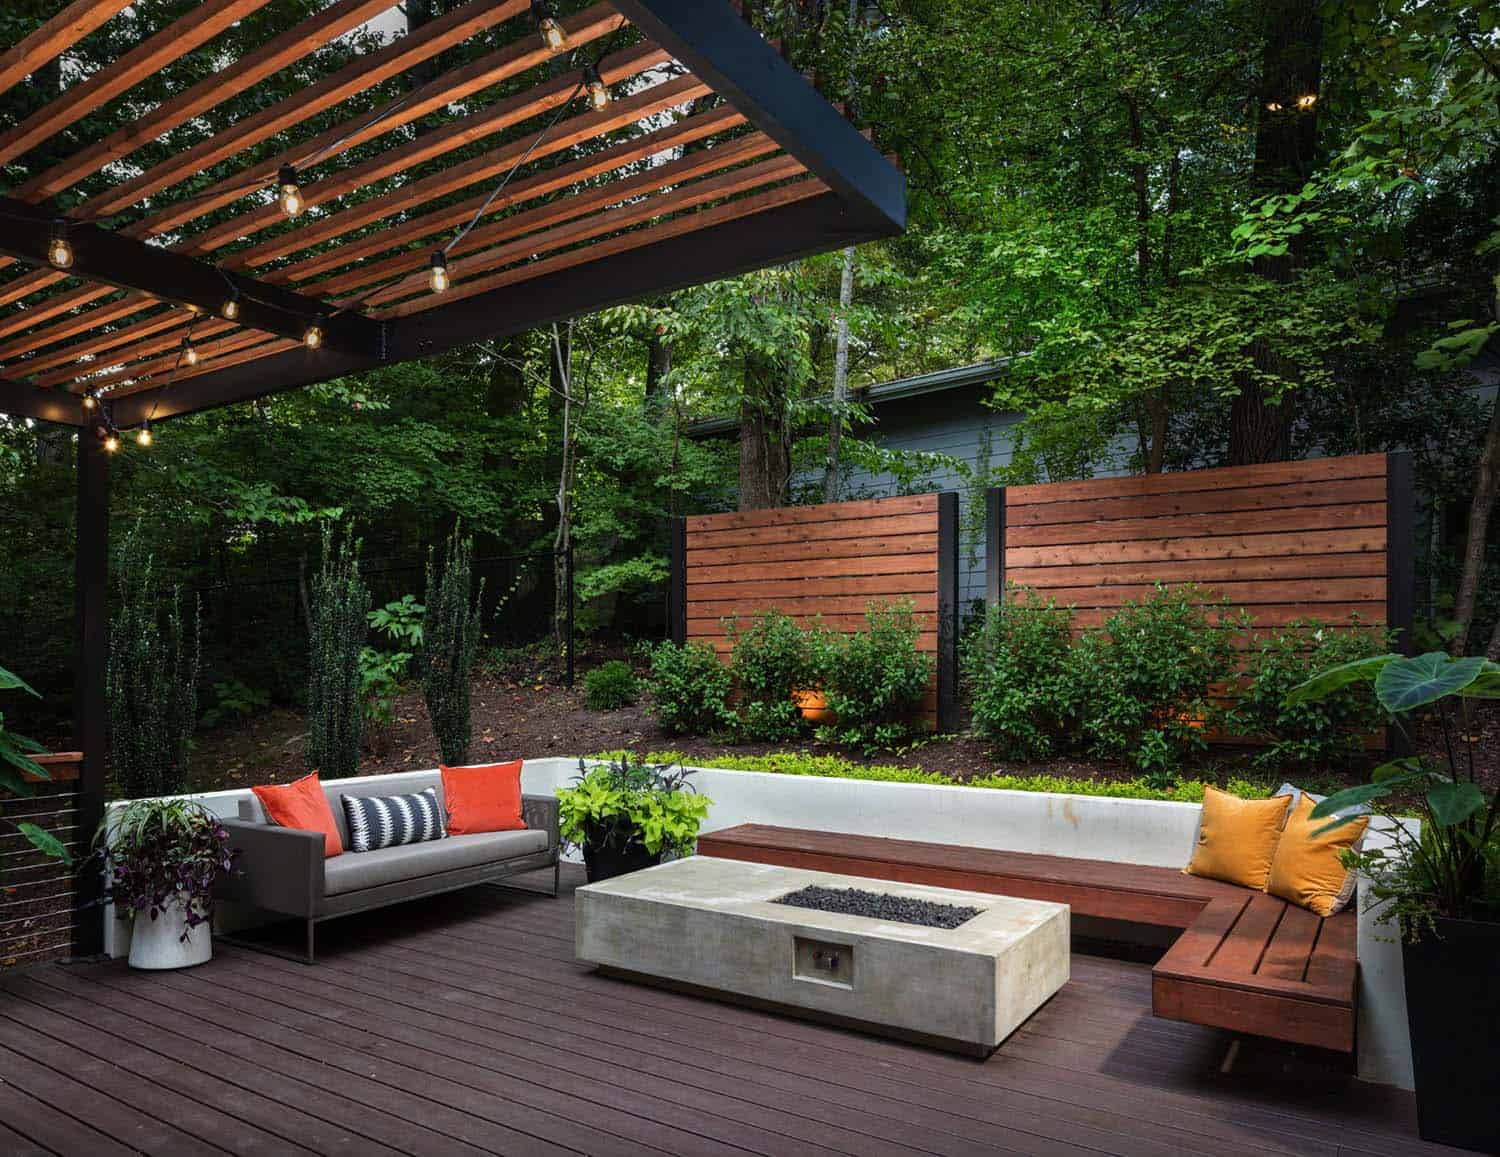 28 Inspiring Fire Pit Ideas To Create A Fabulous Backyard ... on Garden Ideas With Fire Pit id=45573